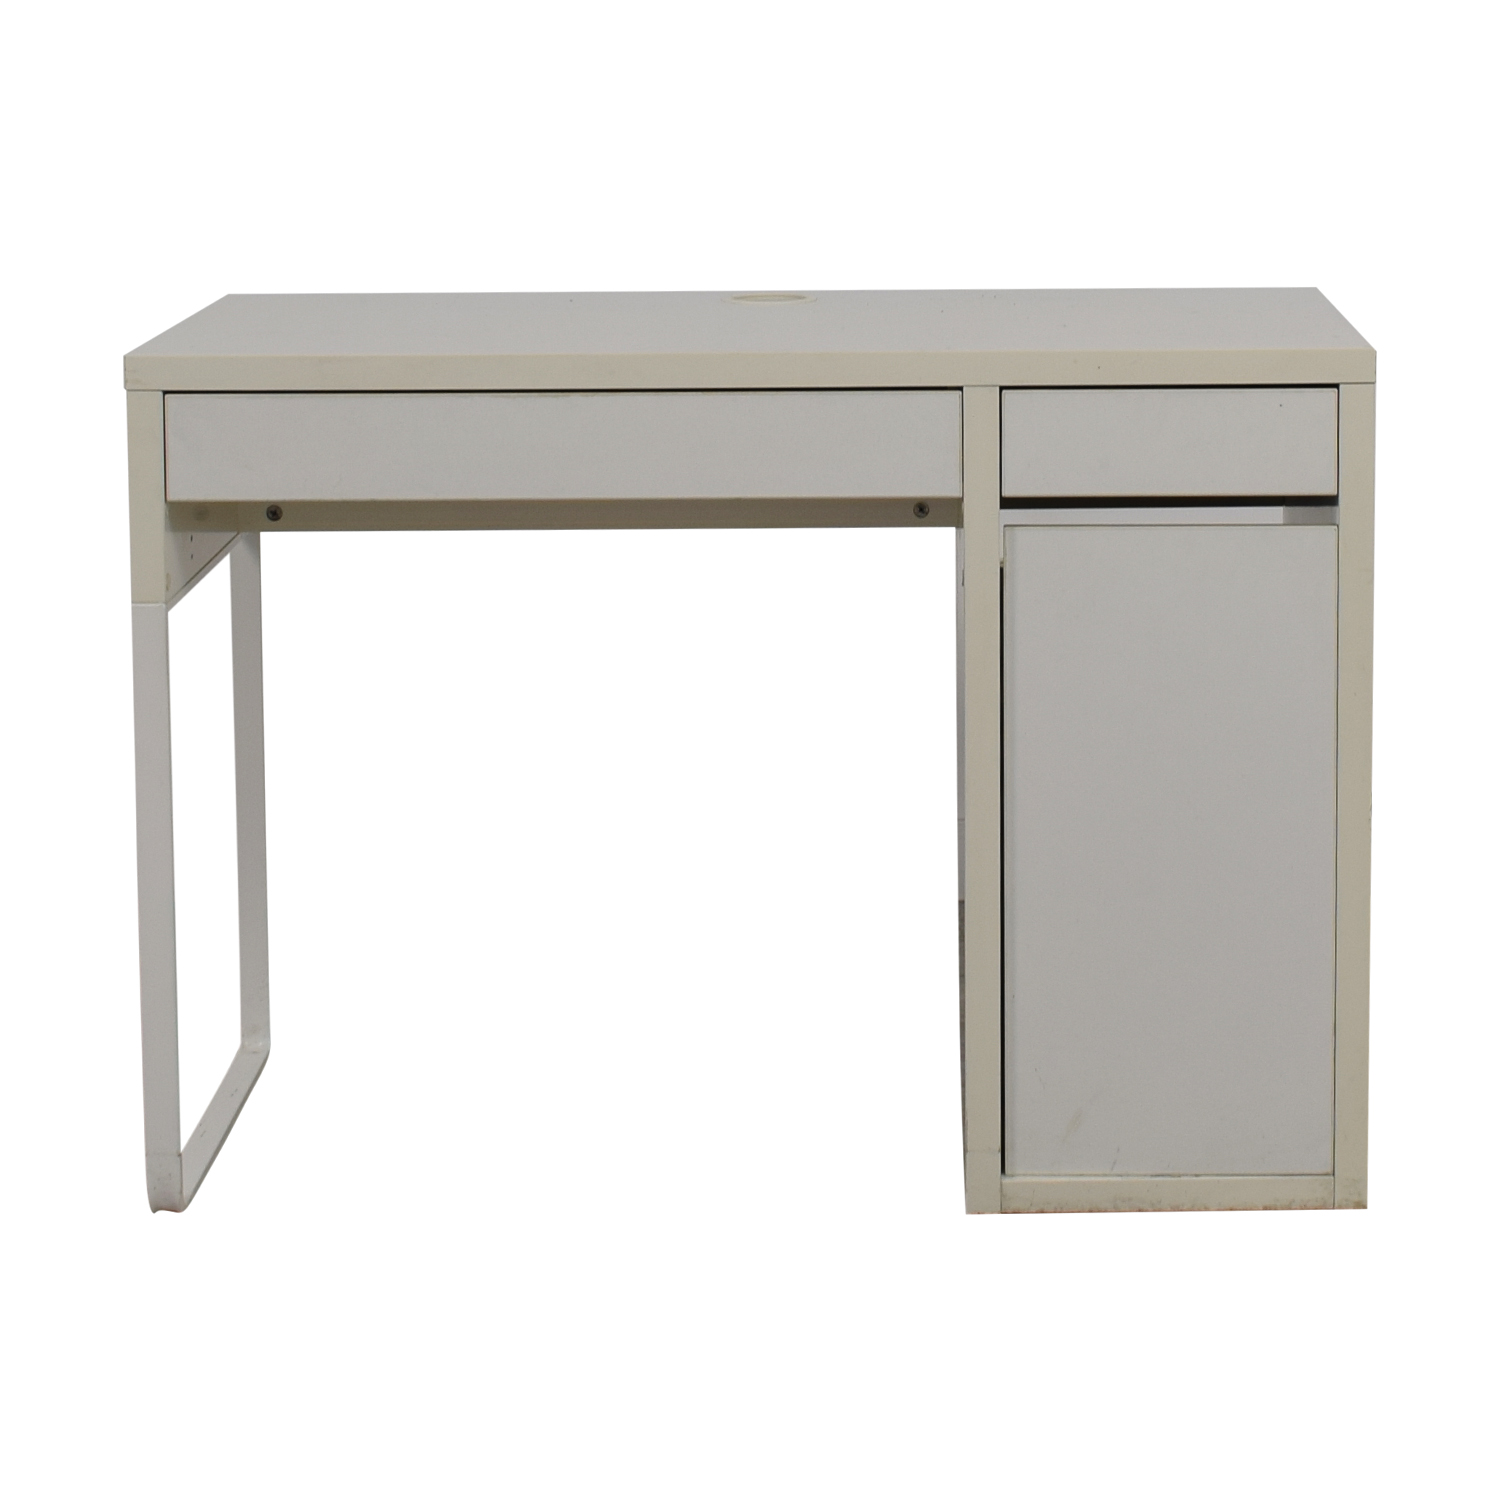 Two-Drawer White Desk with High Rover and Printer Storage dimensions